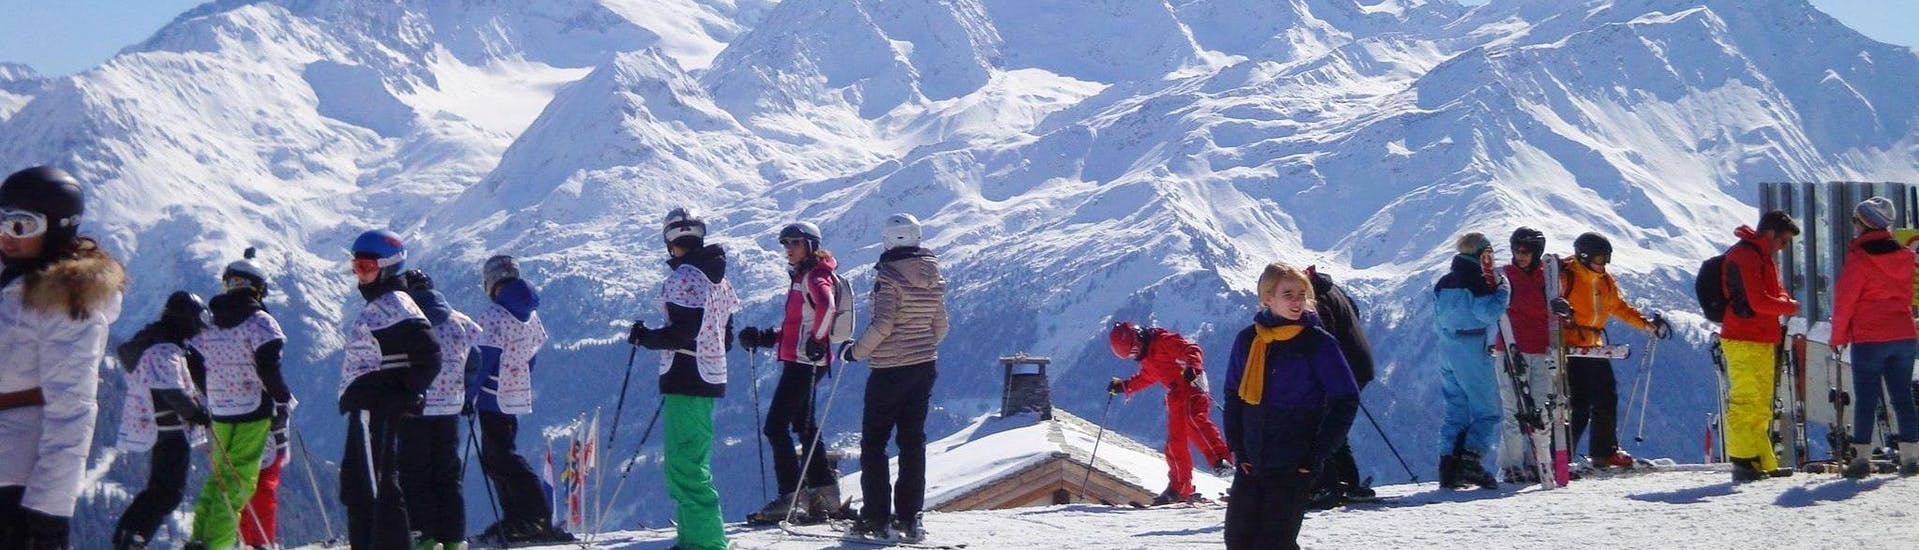 View of the top of the gondola station where start the Kids Ski Lessons (4-12 years) - High Season -With Experience with the Swiss Ski School La Tzoumaz.